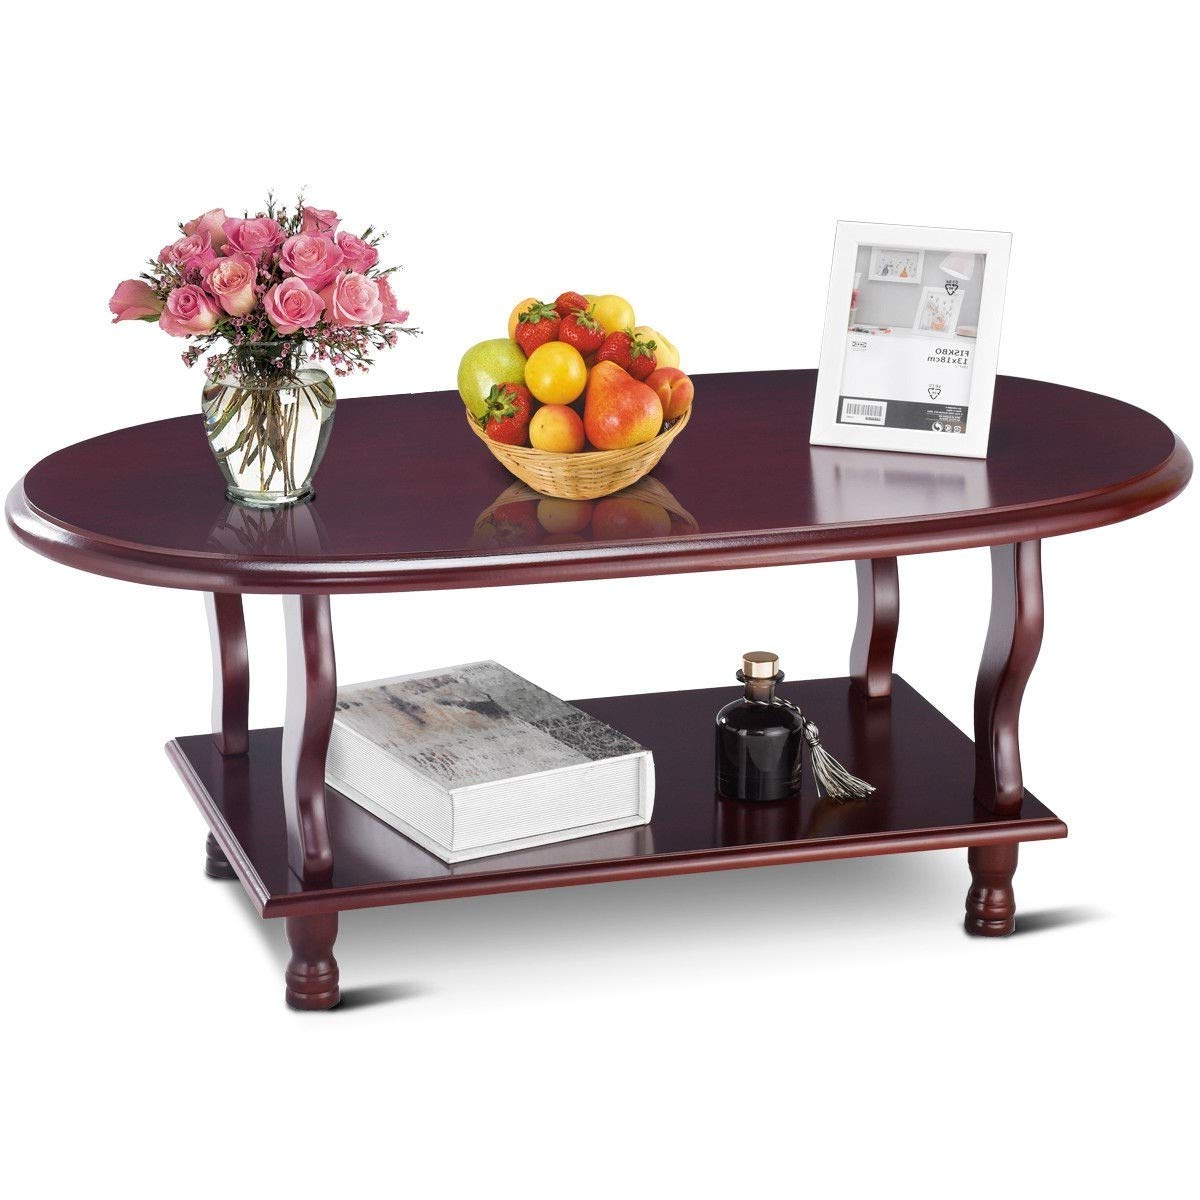 Cheap Oval Cherry Coffee Table, Find Oval Cherry Coffee Throughout Well Known Furniture Of America Crescent Dark Cherry Glass Top Oval Coffee Tables (View 5 of 20)